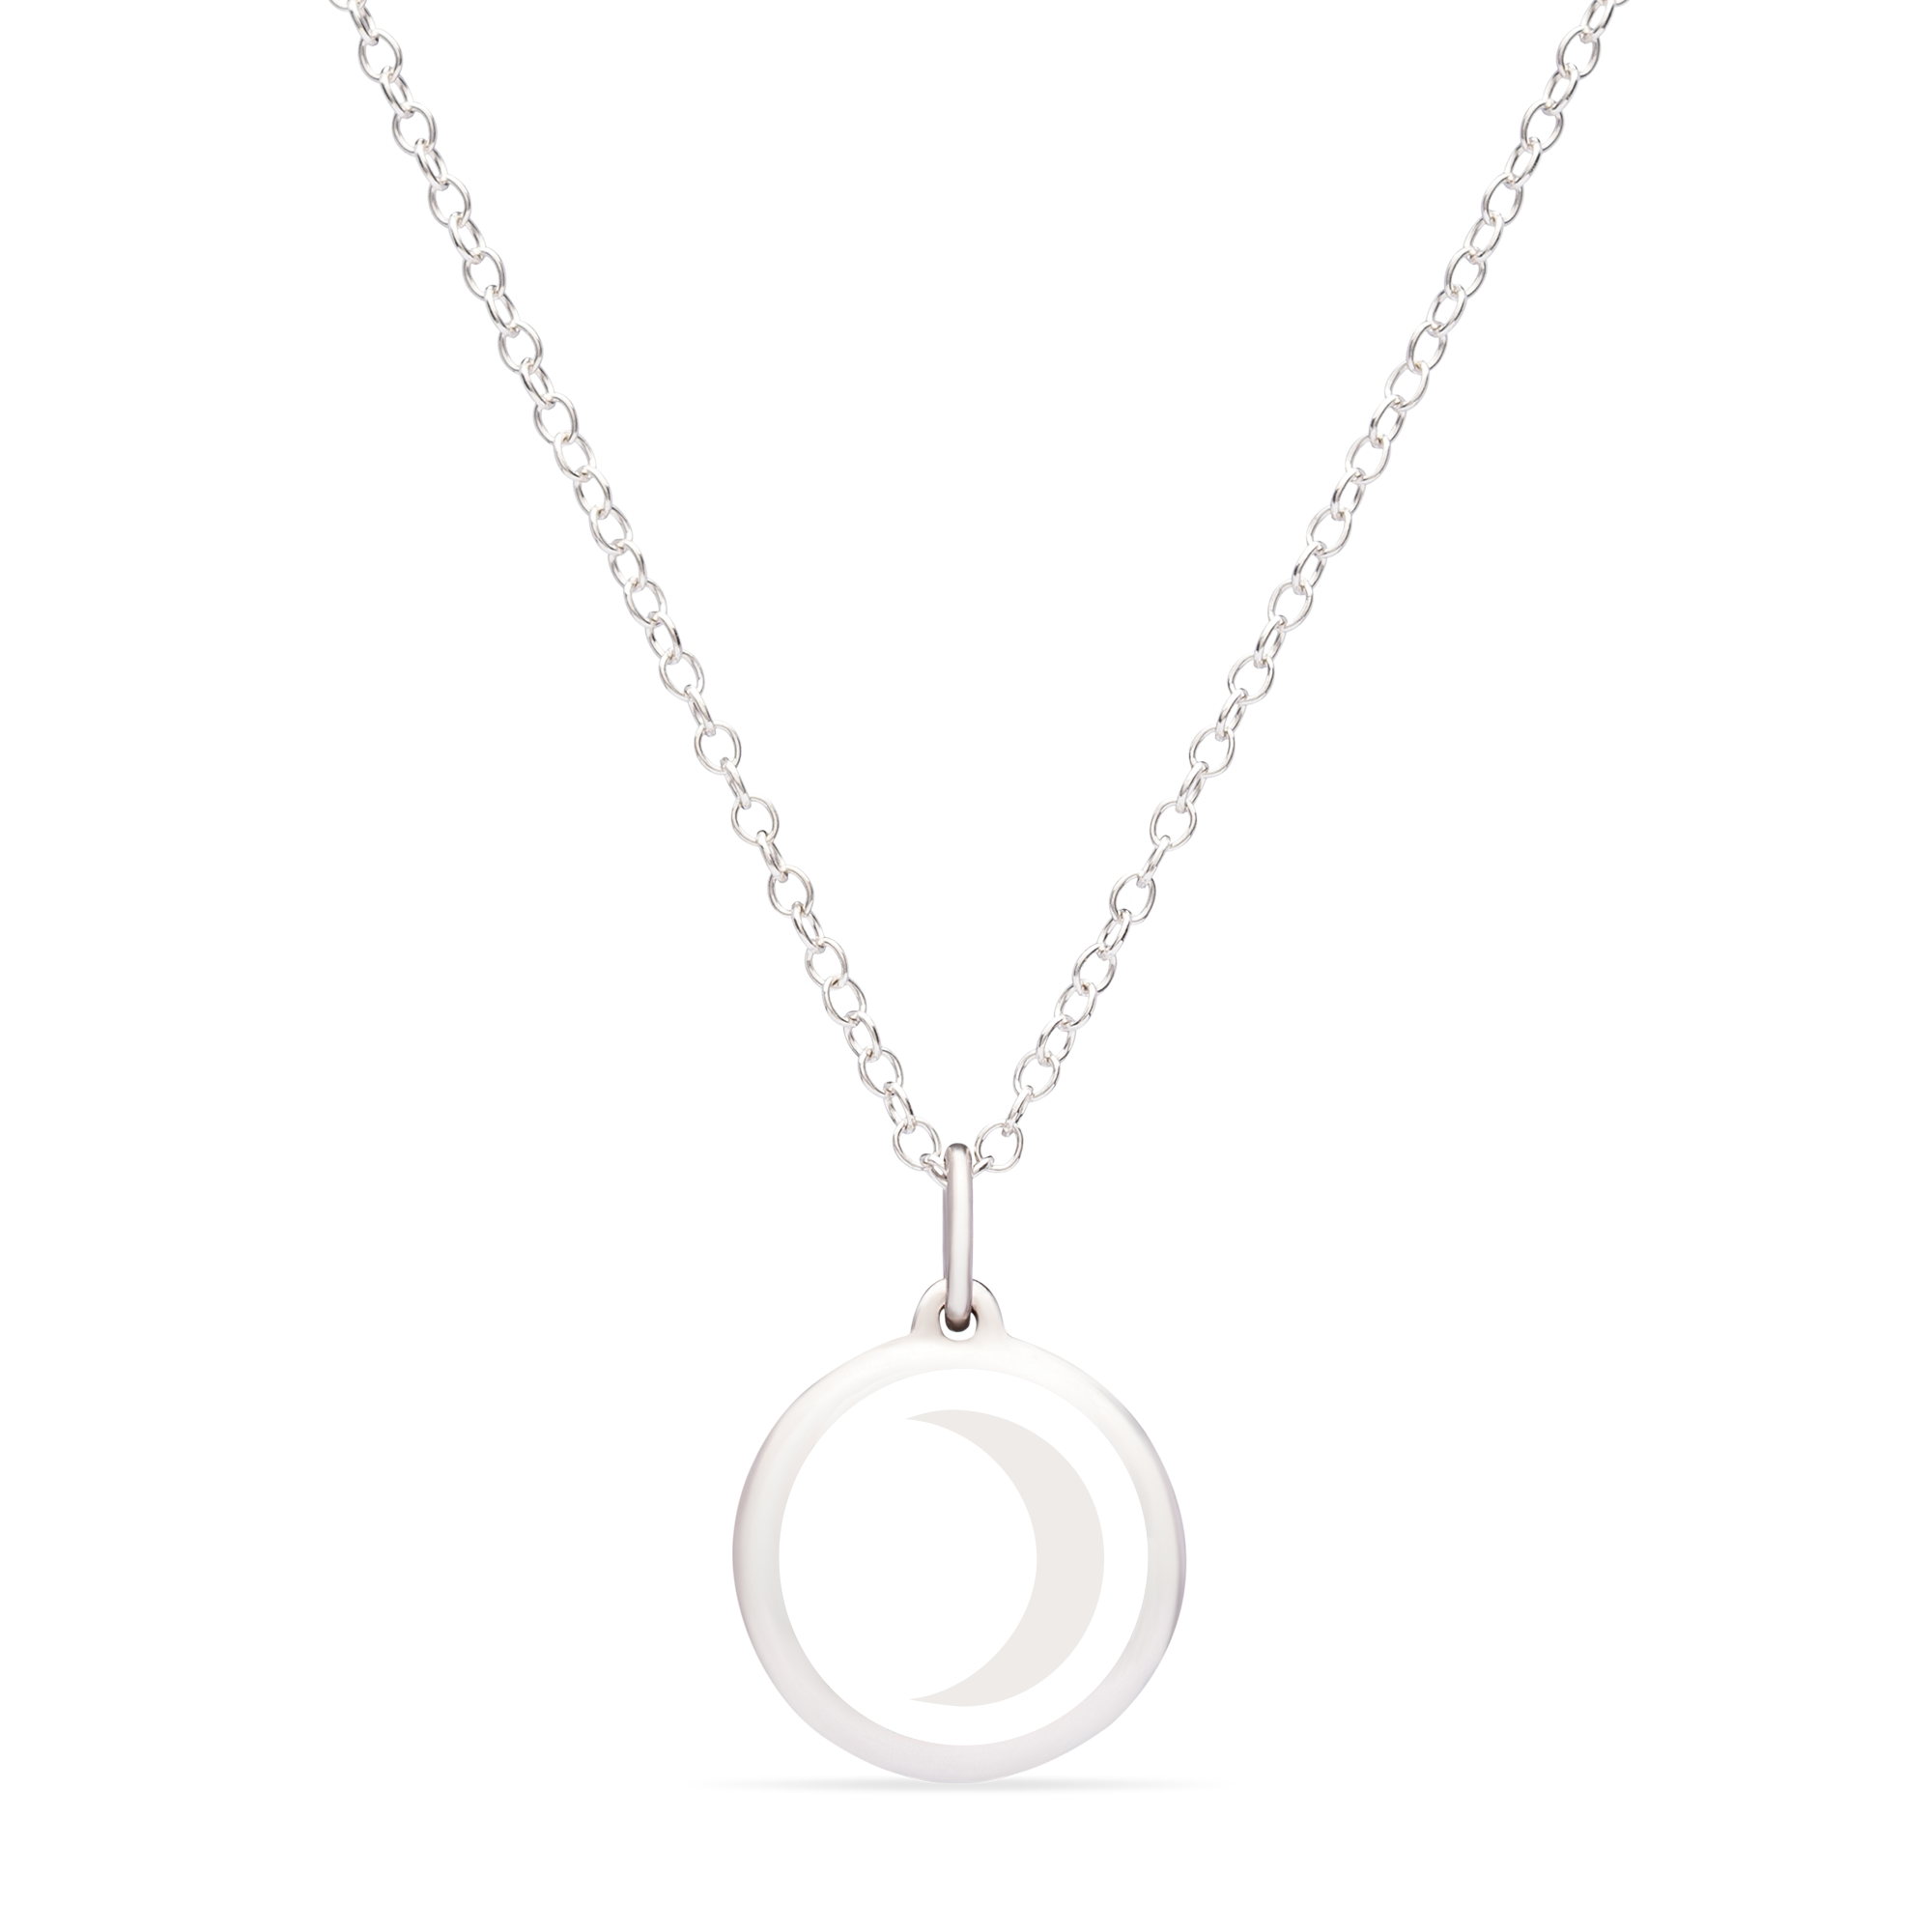 MINI MOON CHARM sterling silver with rhodium plate